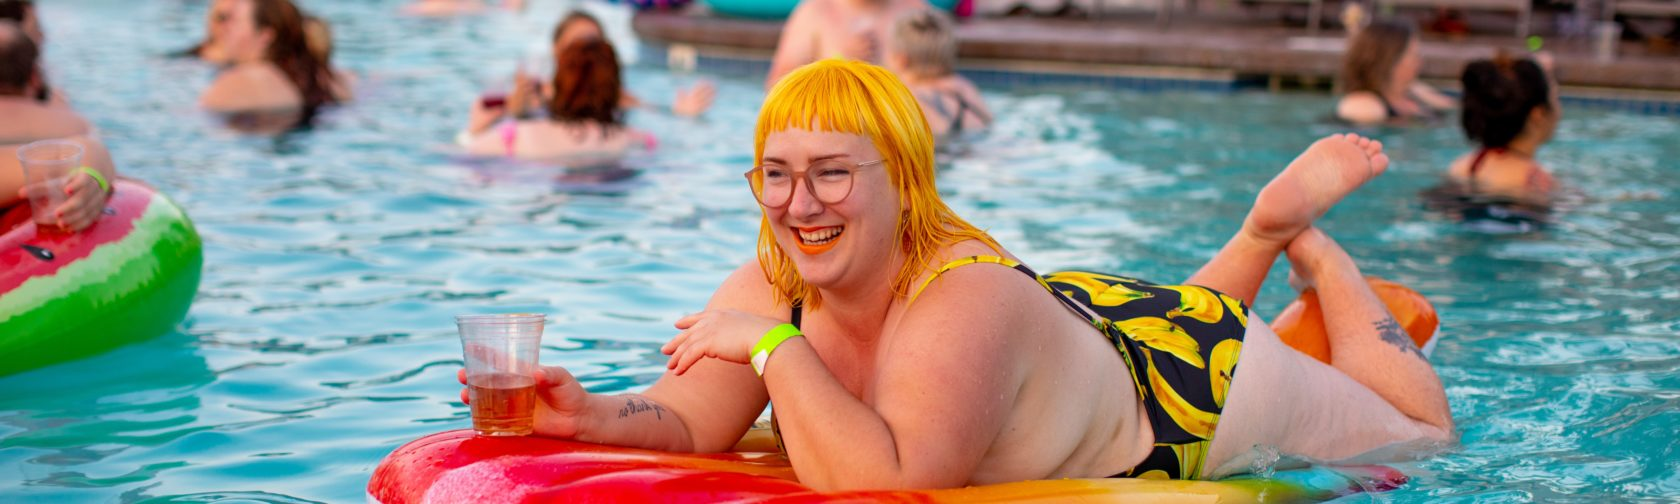 Plus size woman in the pool - Anat Geiger's blog about body image